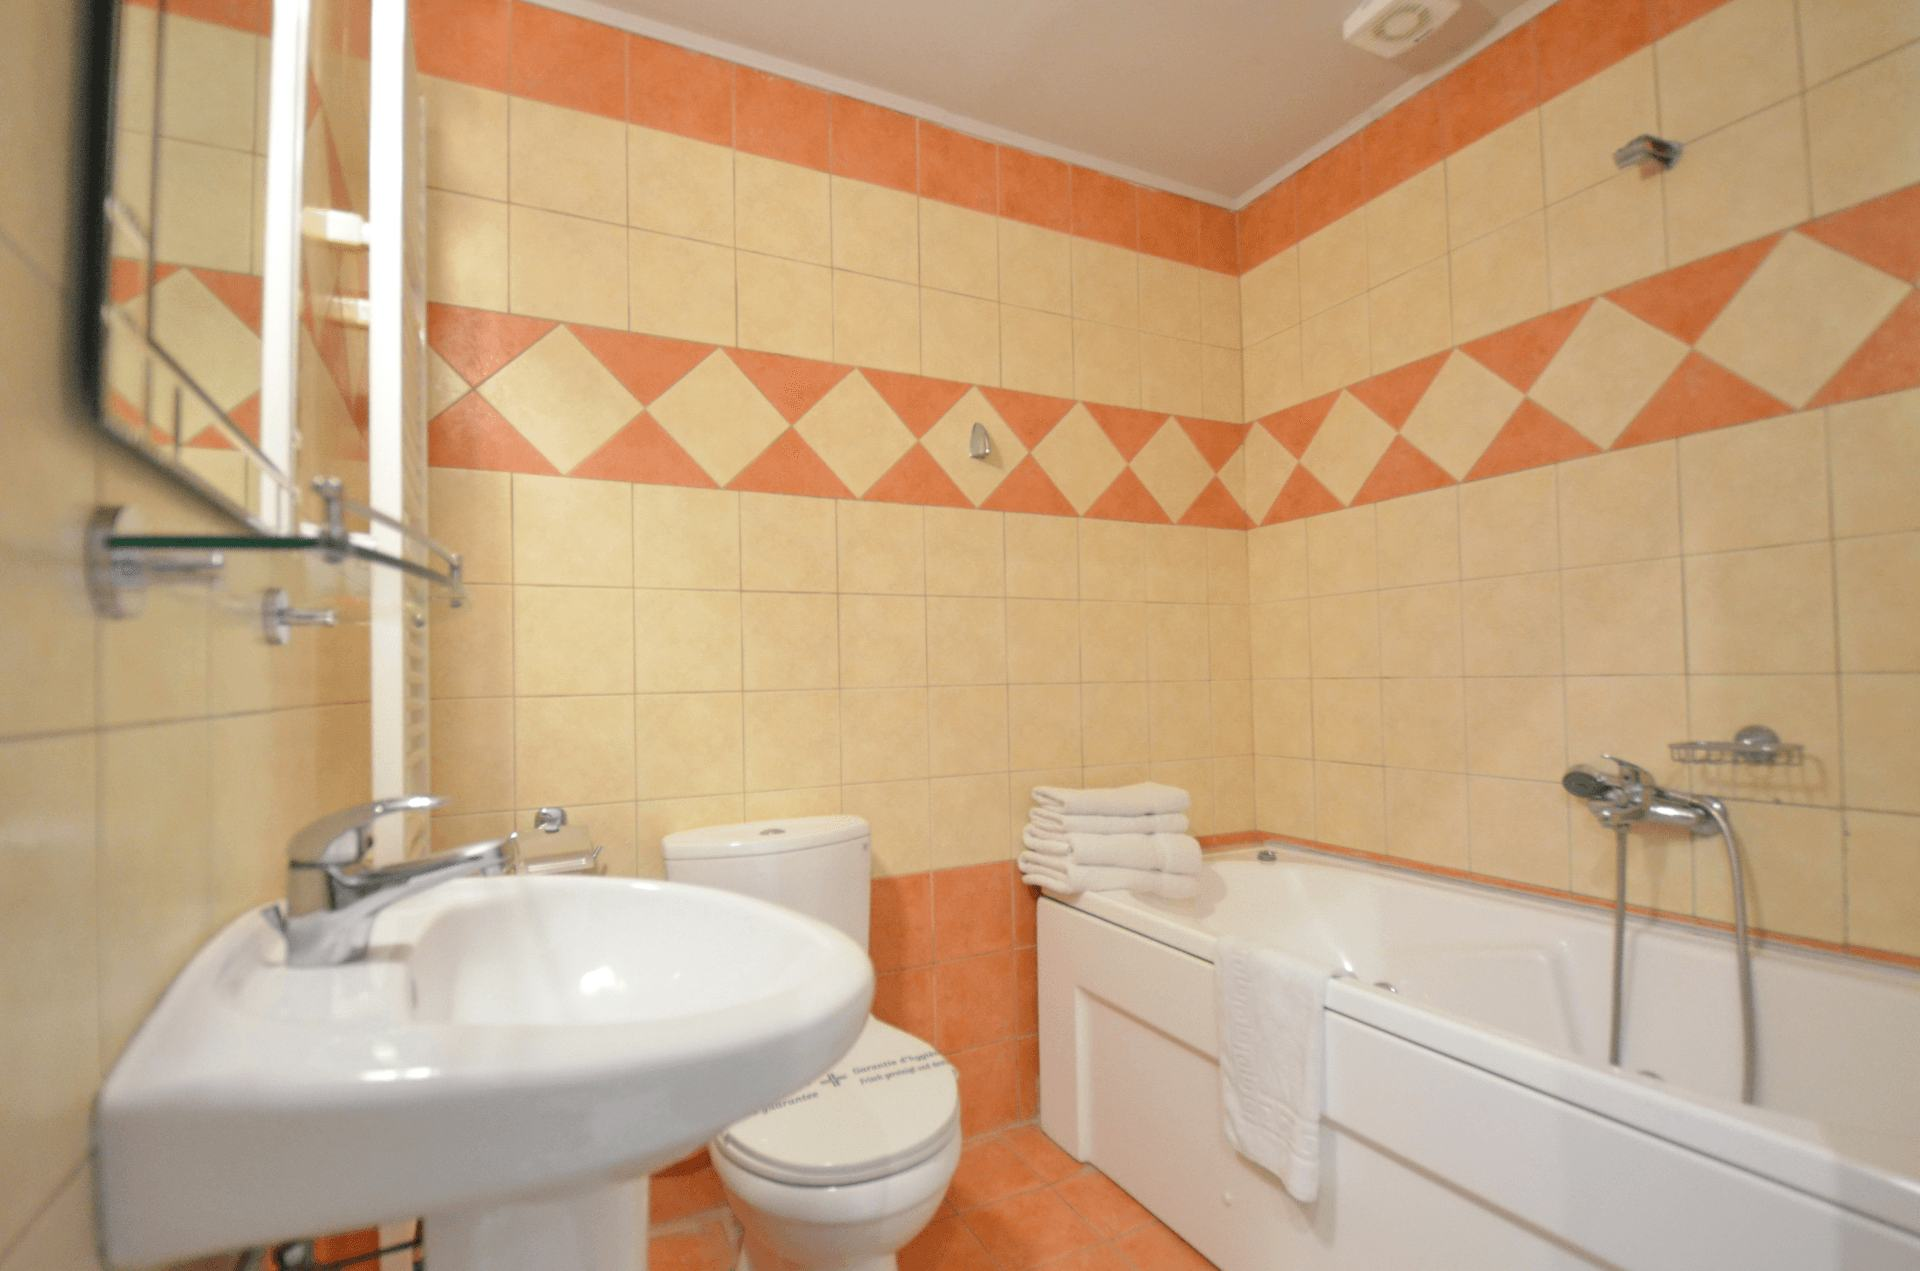 wc at room with fireplace